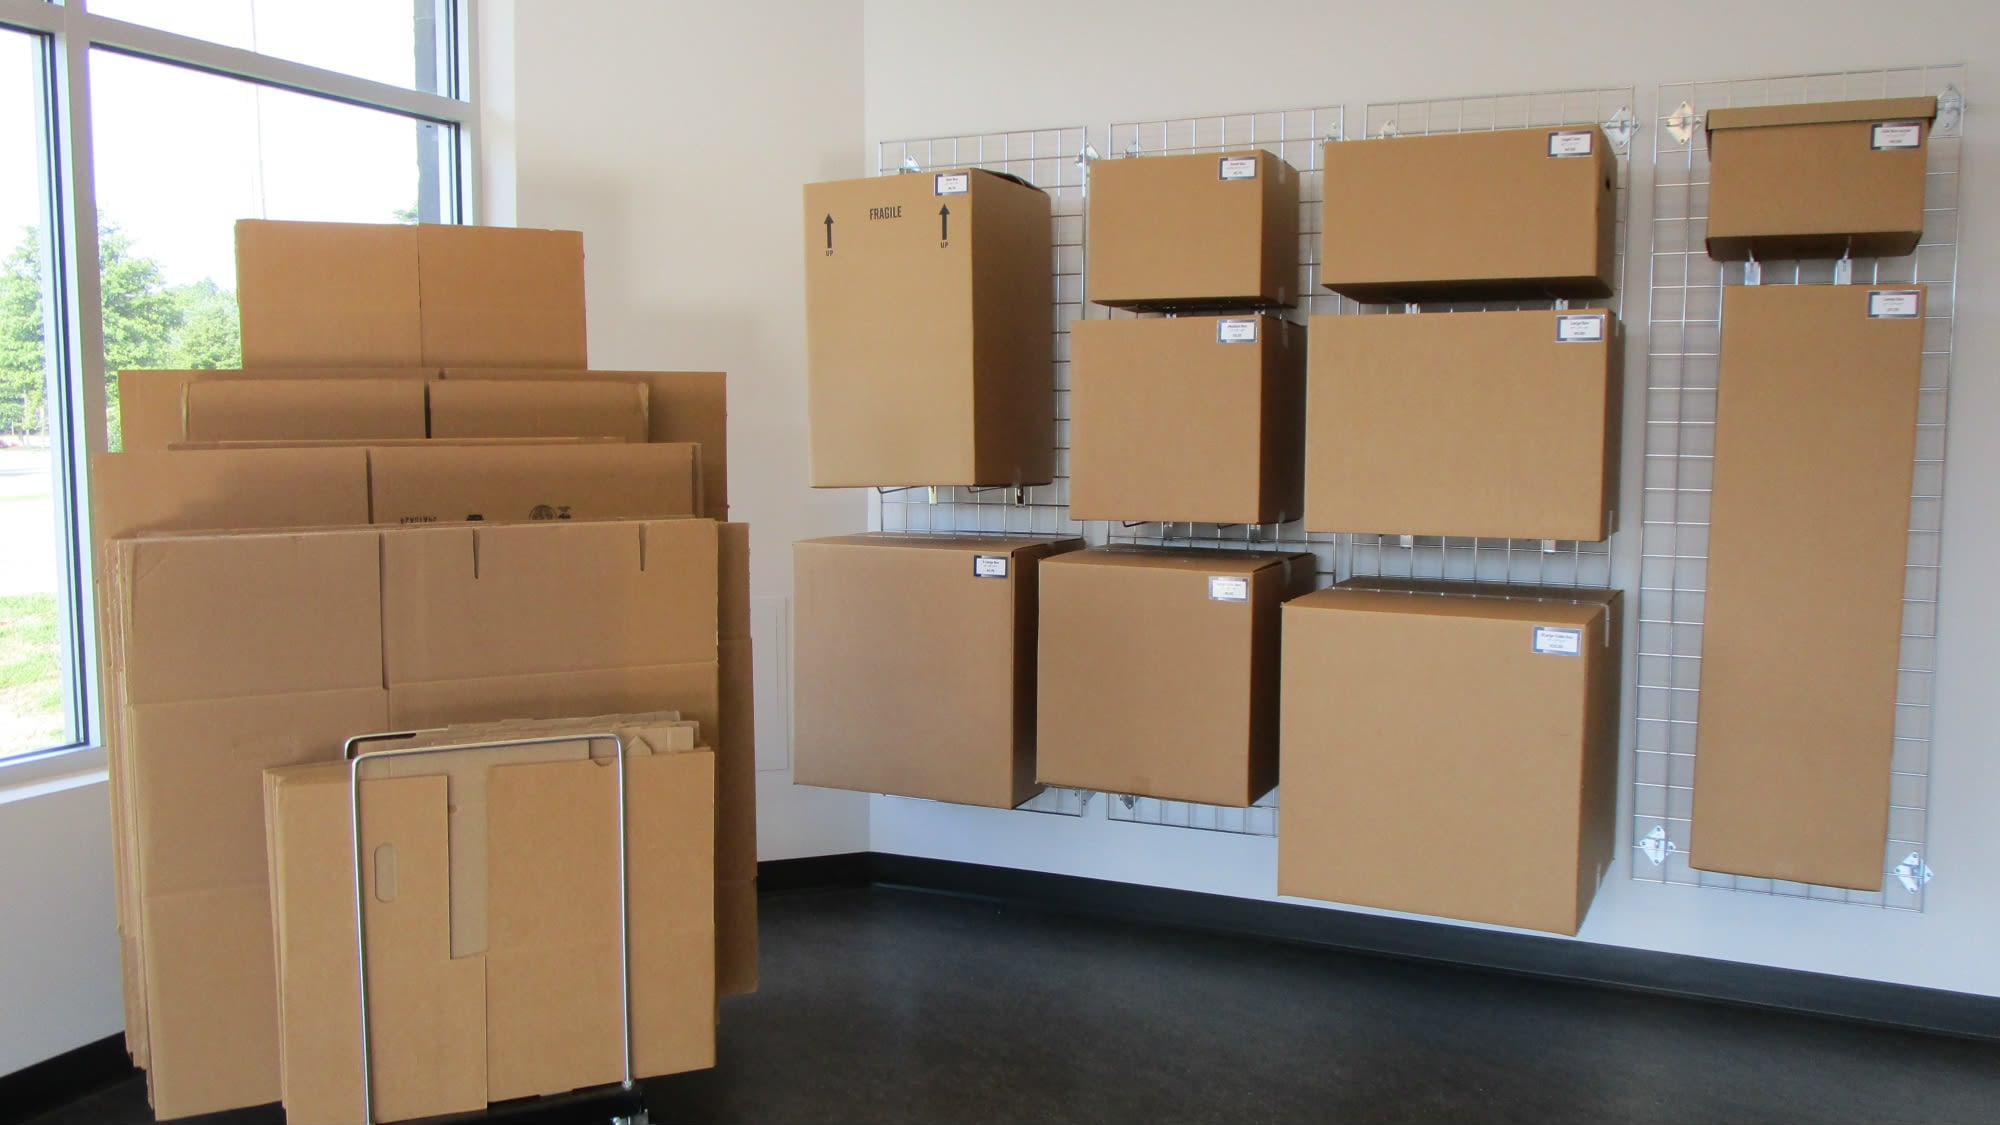 Boxes for sale at Park 'N' Space Self Storage in Manassas, Virginia